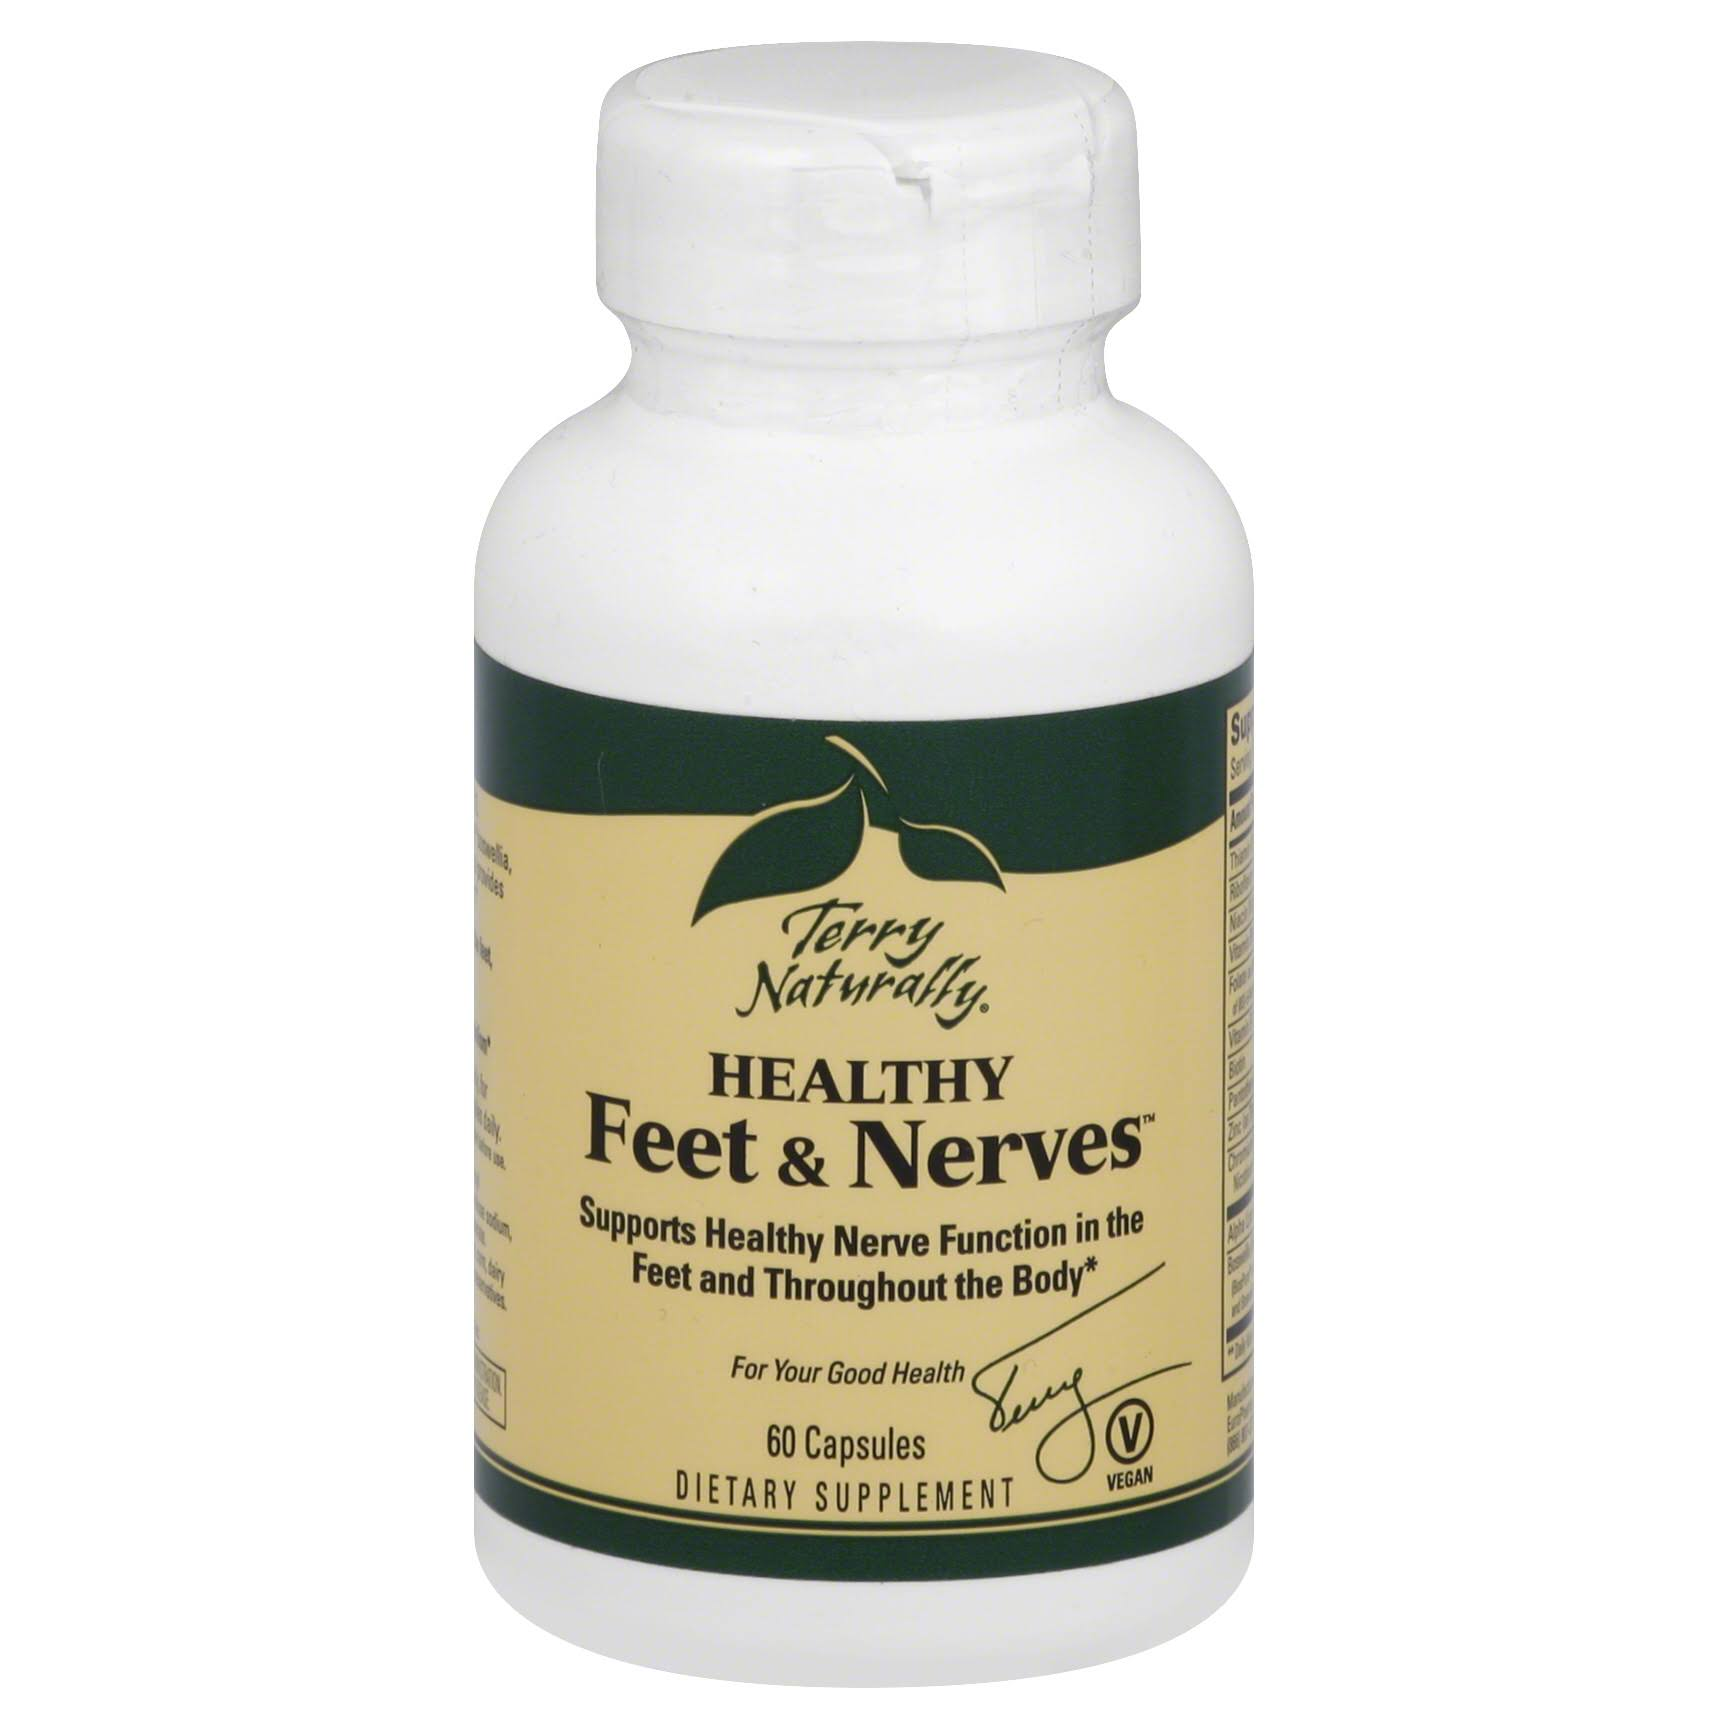 Terry Naturally Healthy Feet and Nerves - 60 Capsules